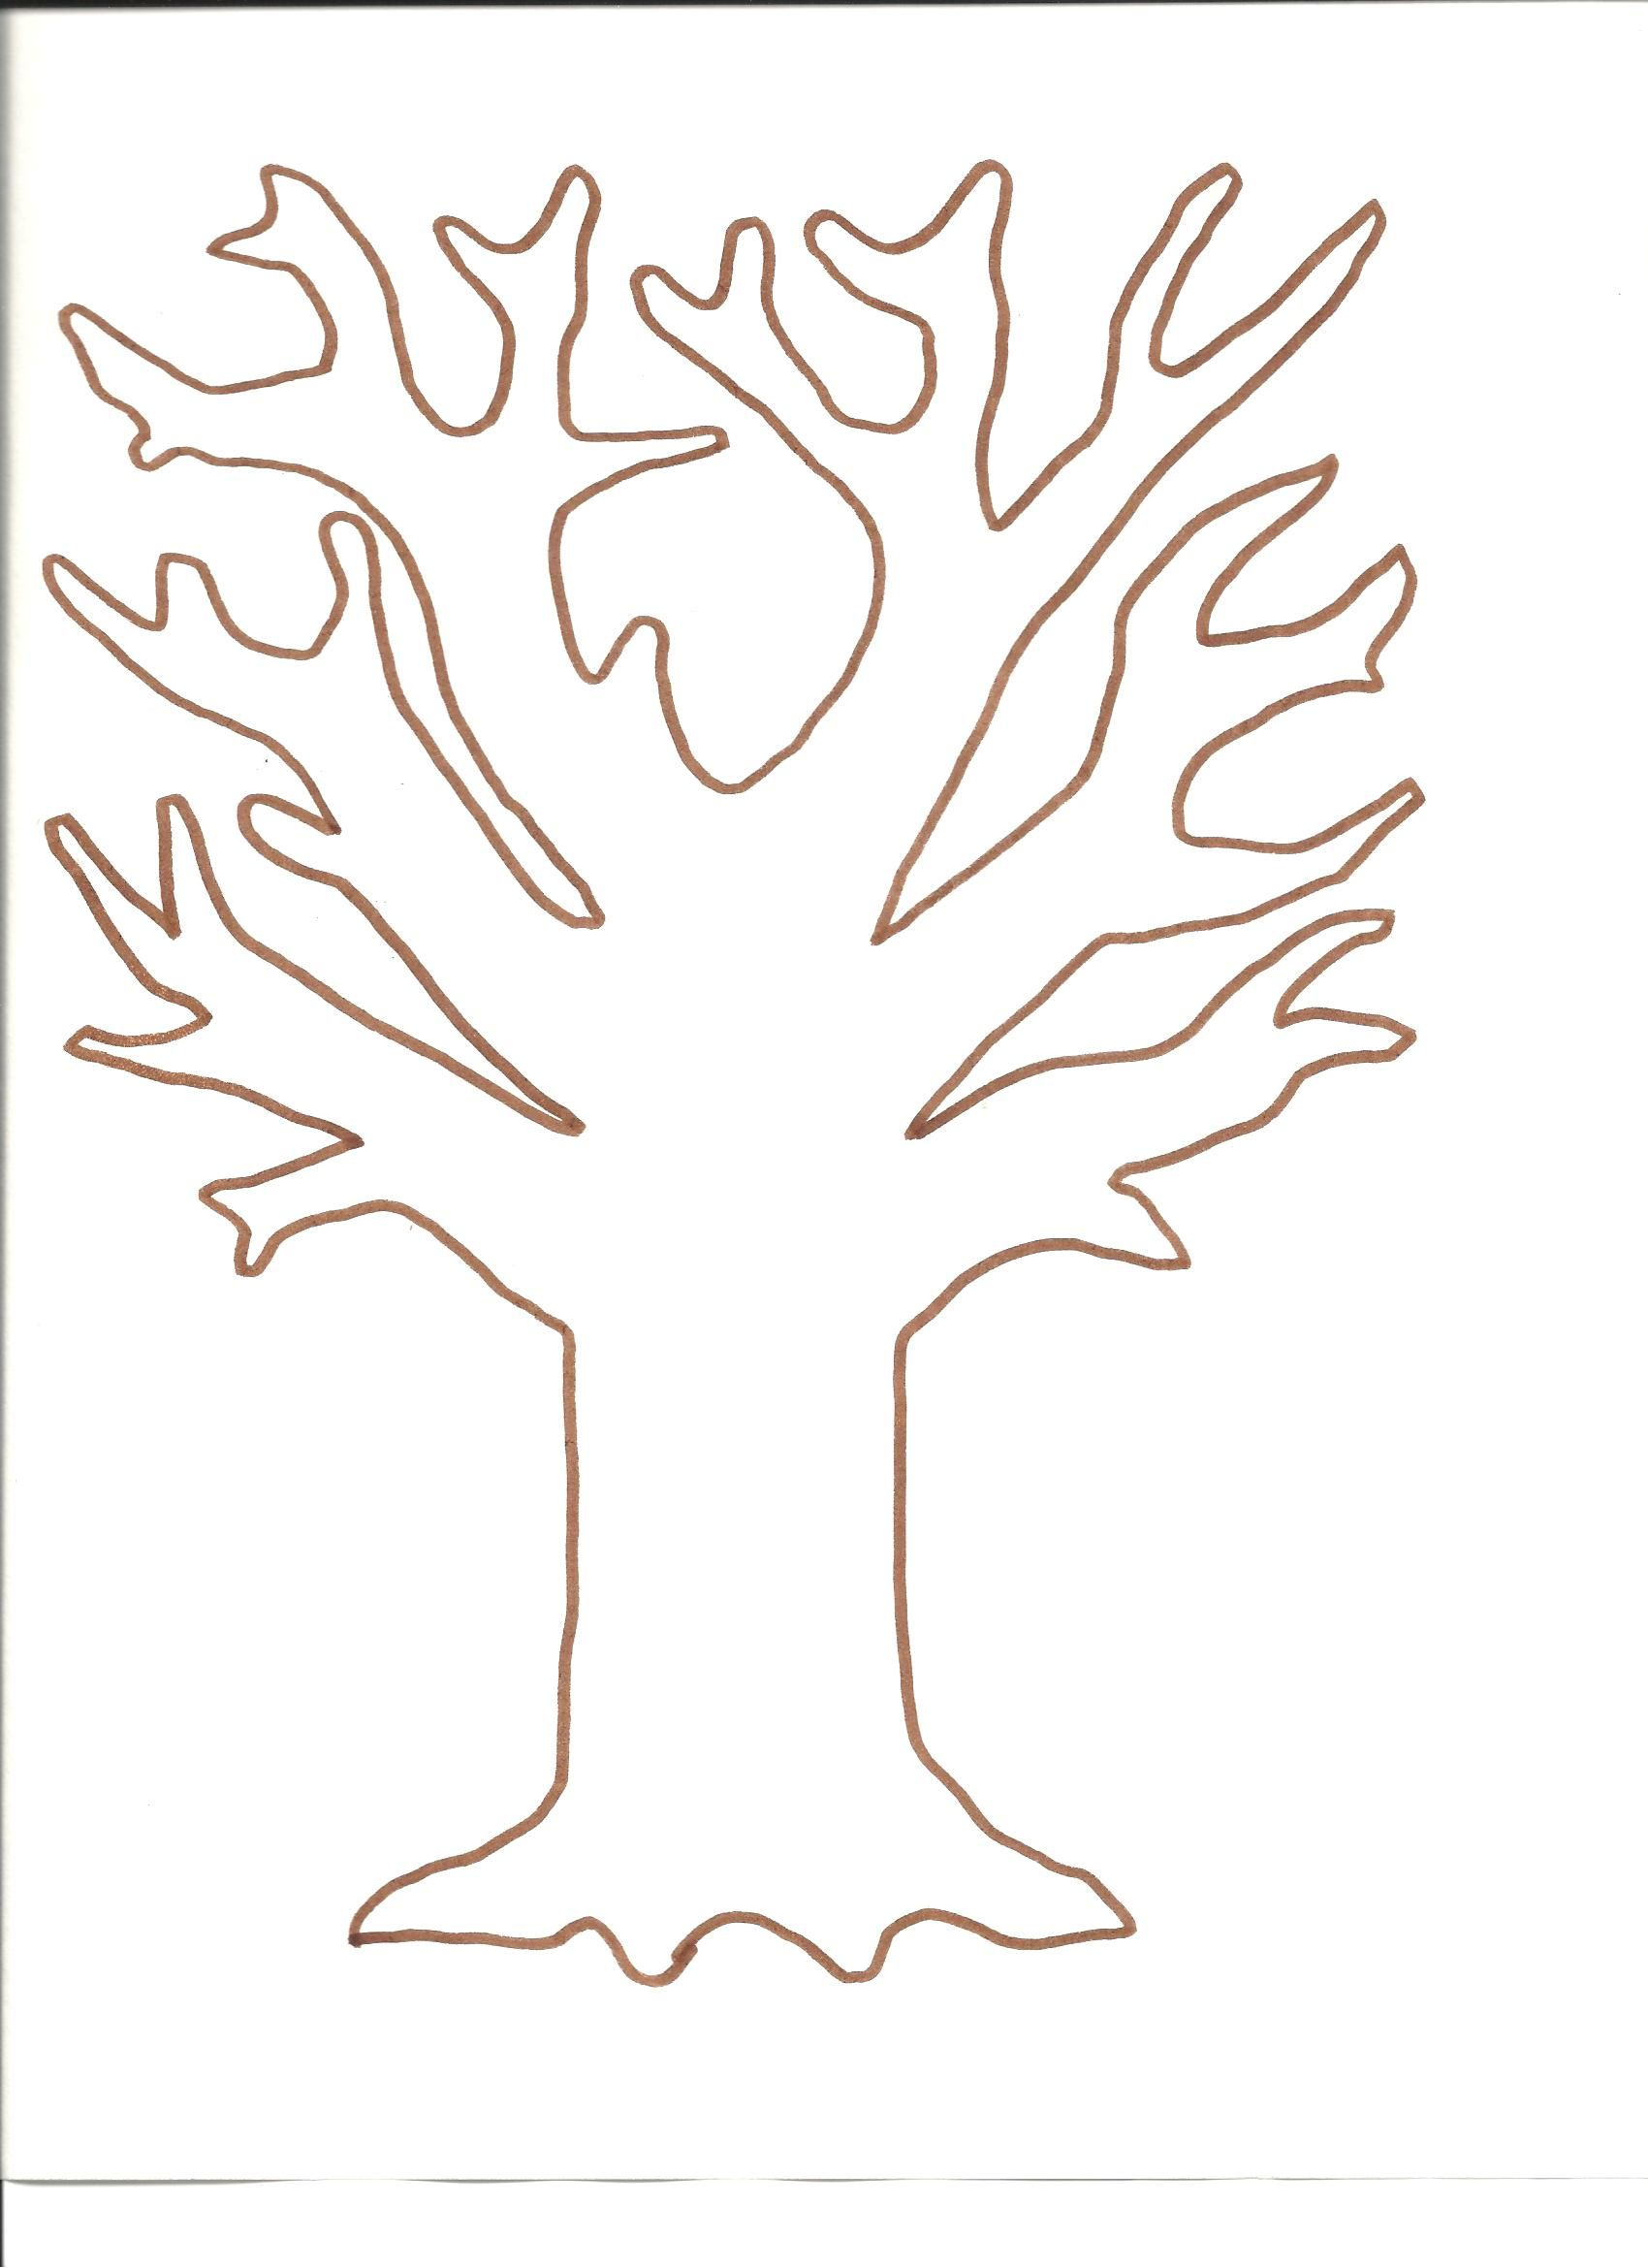 Tree template for fingerprint and tissue paper tree http://www.